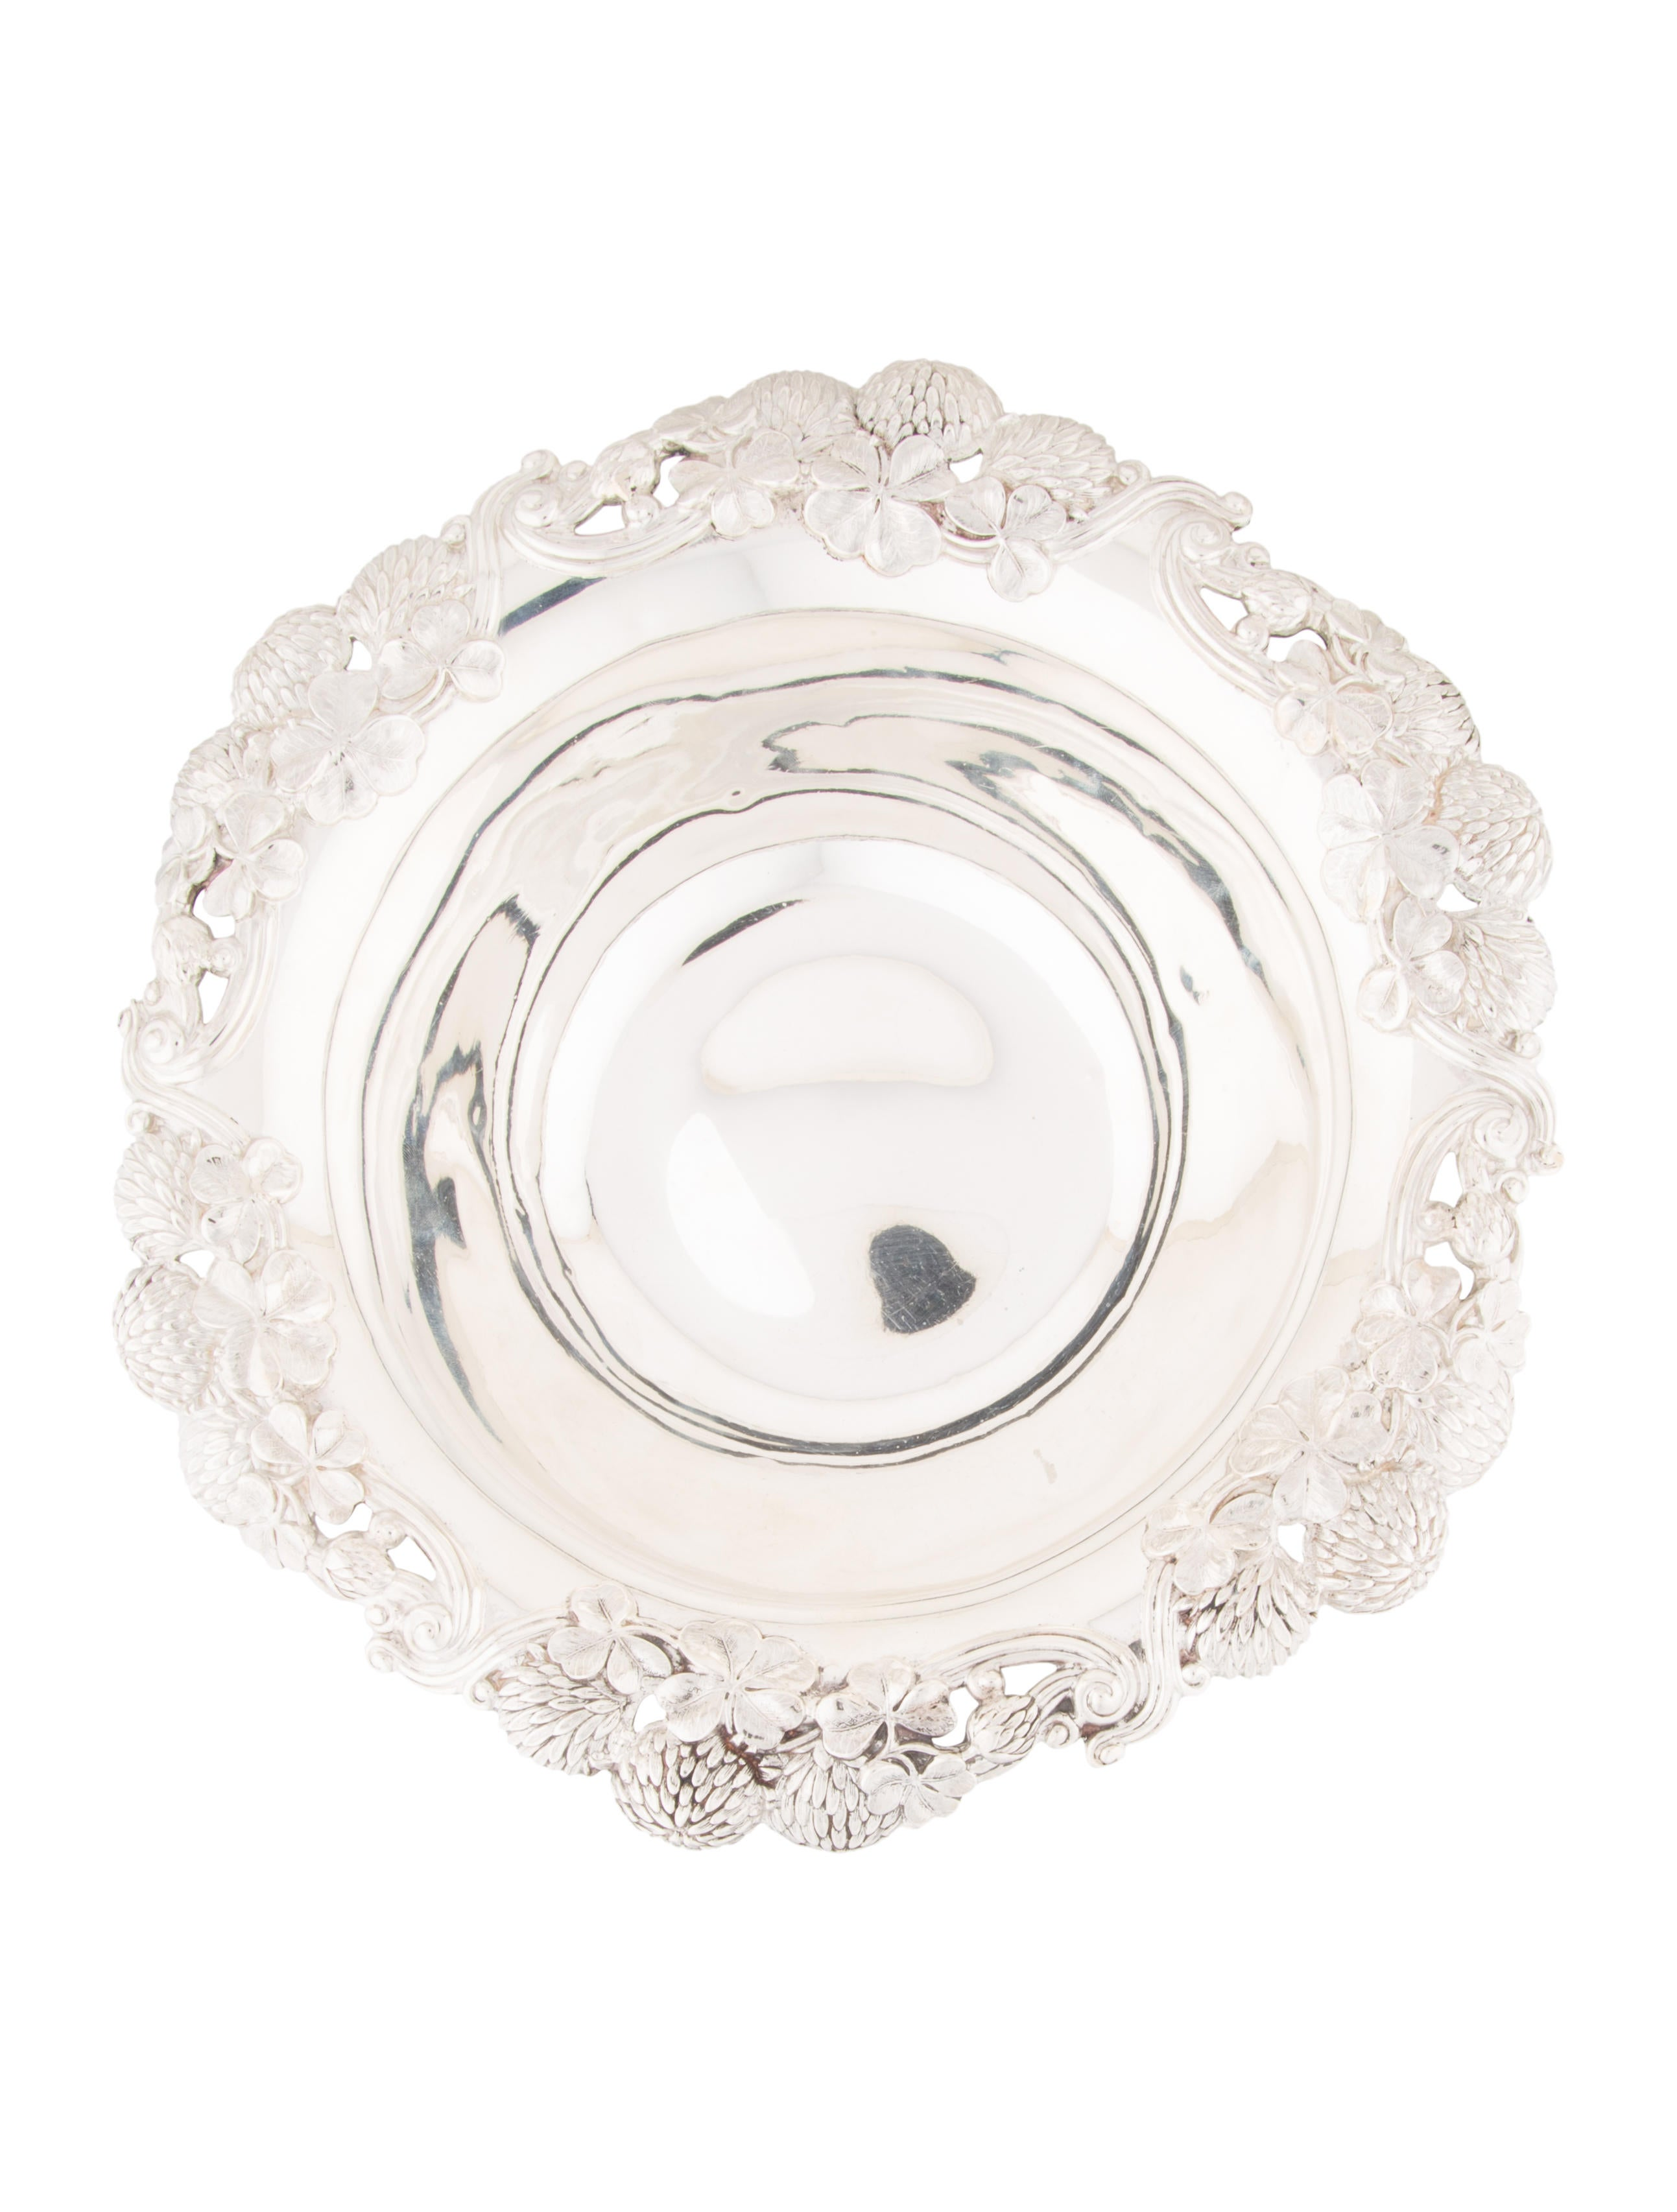 Tiffany co antique clover bowl decor and accessories for Artistic accents genuine silver decoration